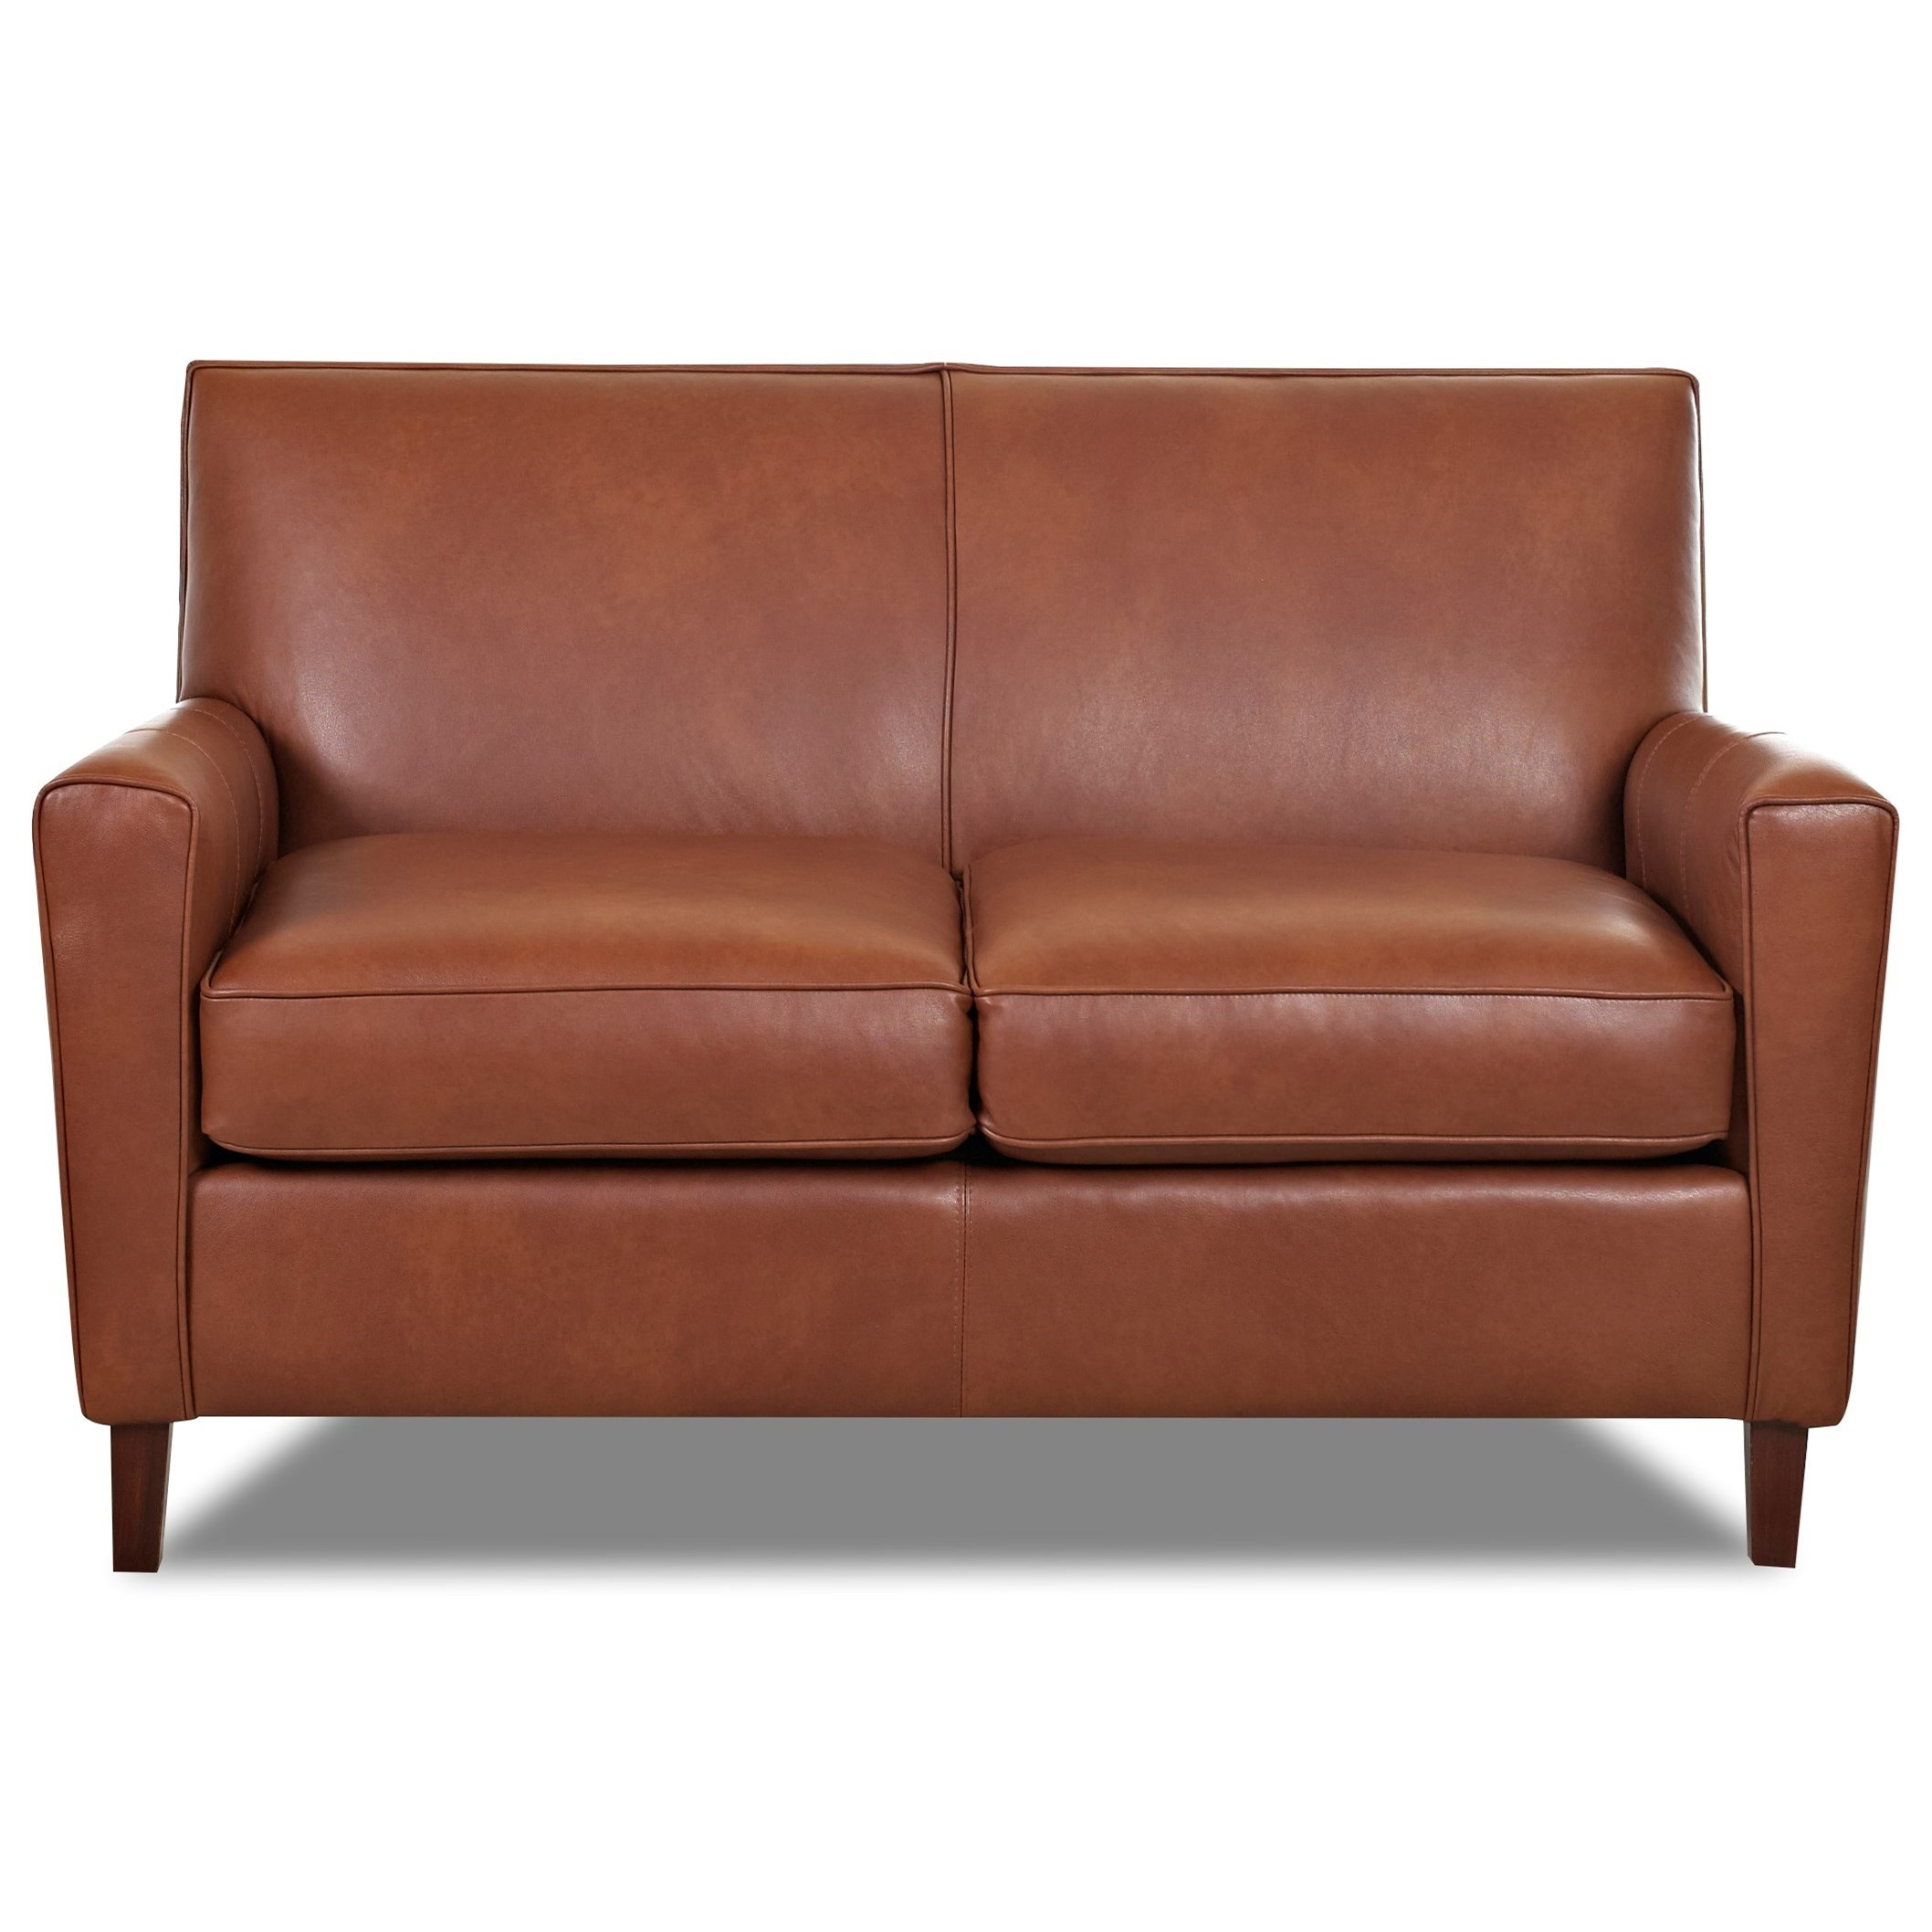 Goldie Loveseat by Klaussner at Johnny Janosik